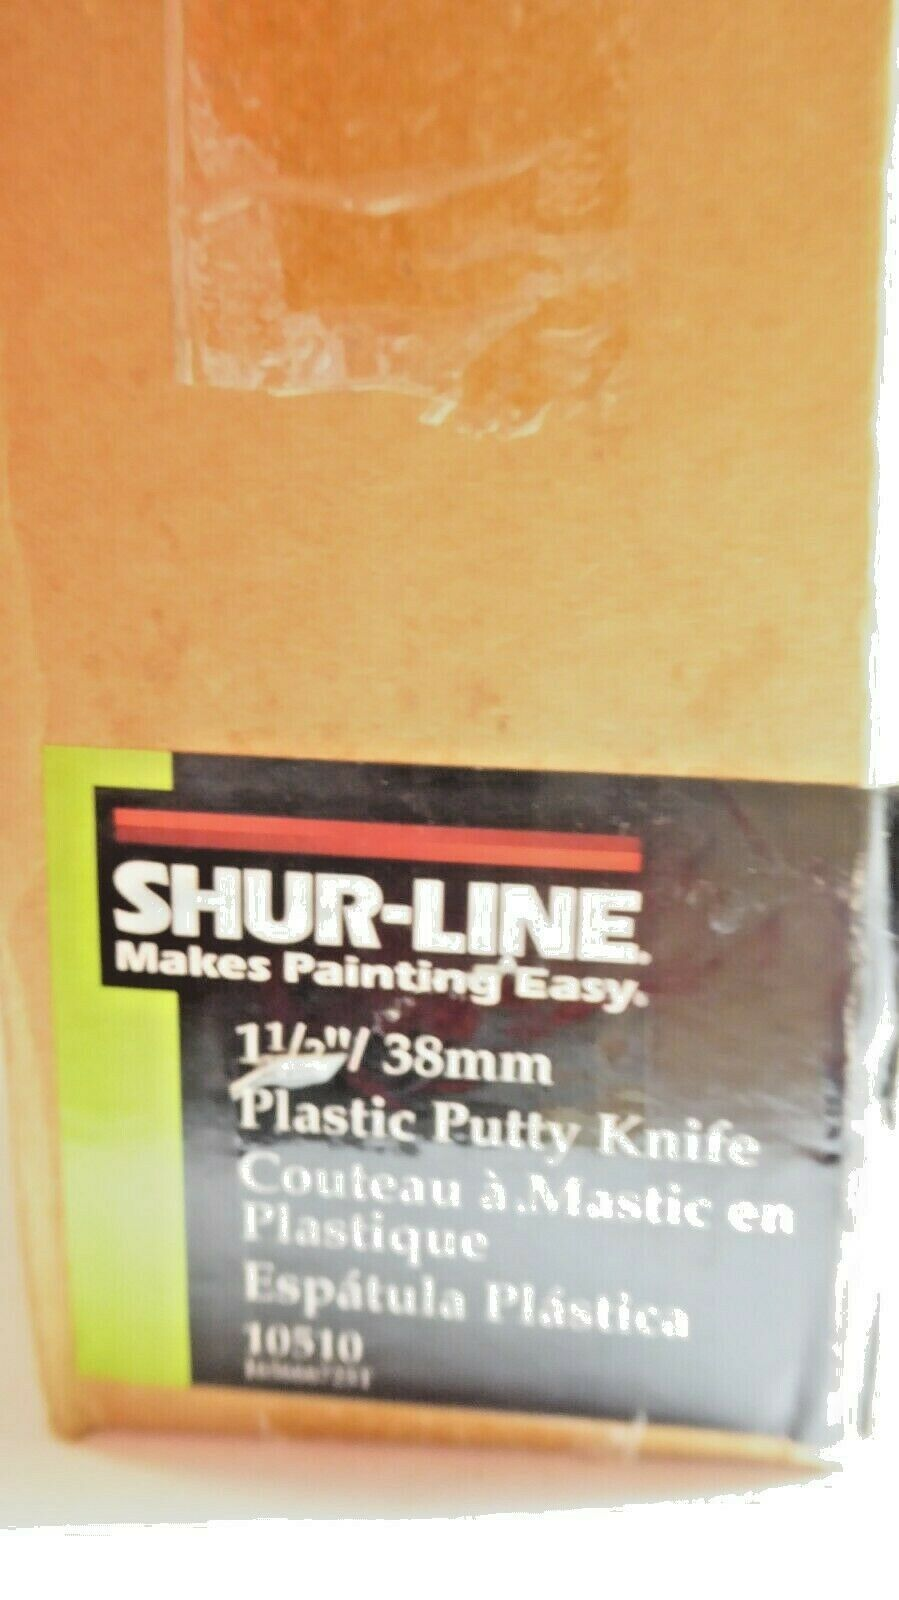 """Shur-Line 10510 Economy Plastic Putty Knife 1 1/2"""" Pack of 25 New"""